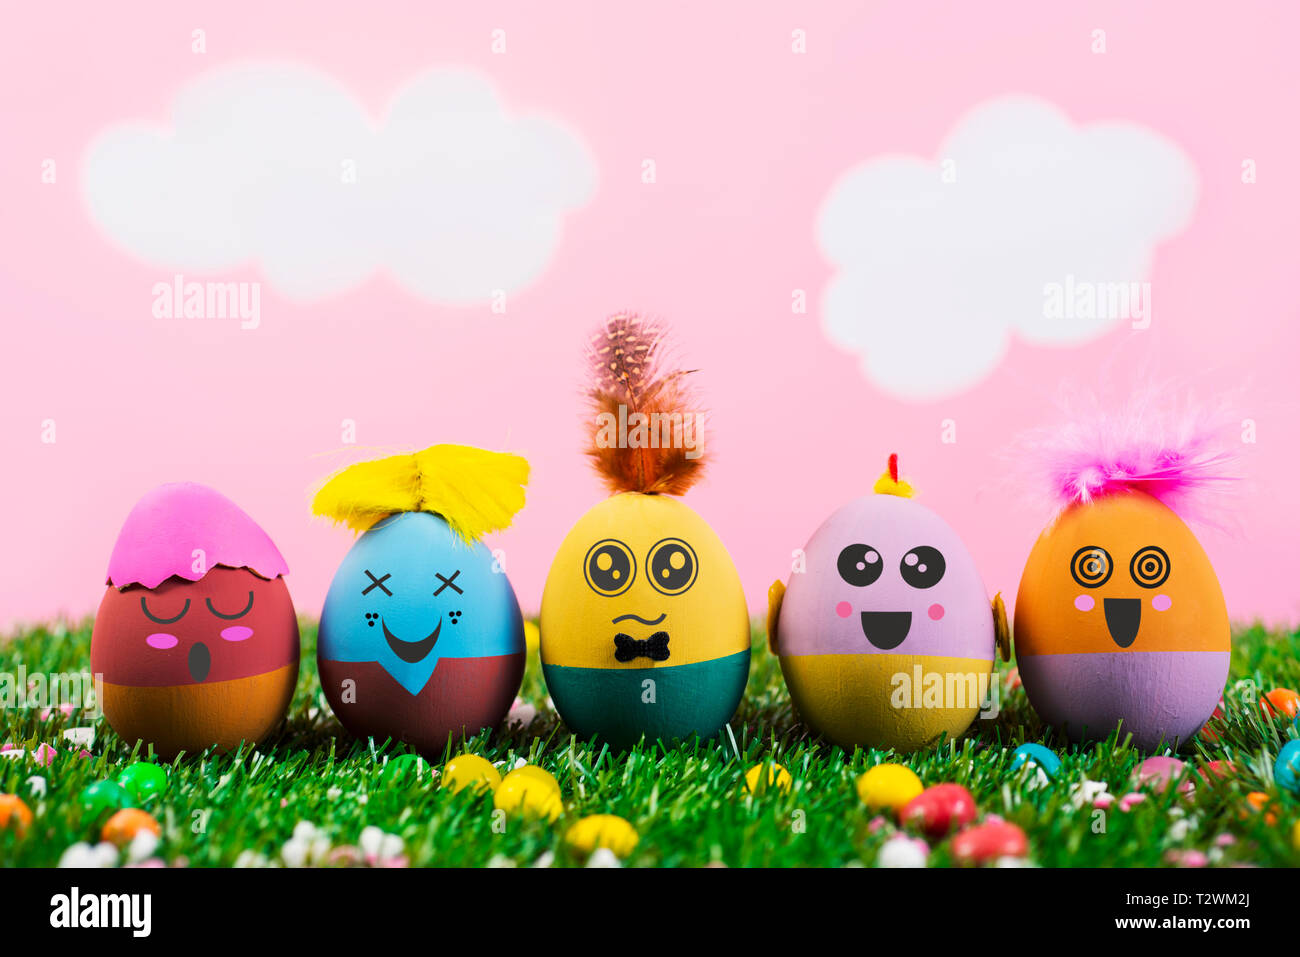 closeup of some handmade easter eggs, with cute and funny faces and hairstyles, on the grass with a pink sky with white clouds in the background - Stock Image